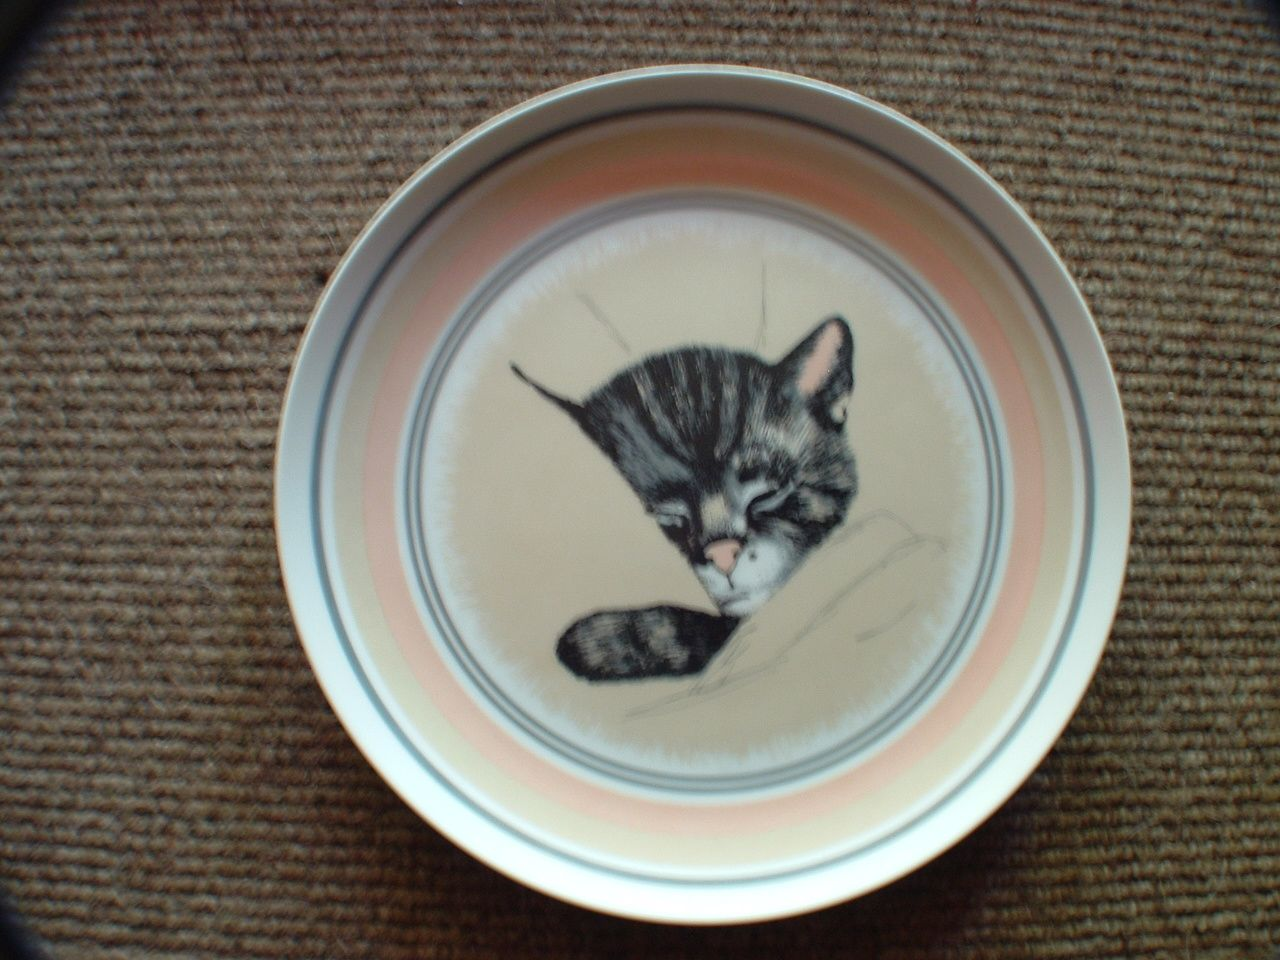 A Little Soap Dish To Keep The Vanity Clean Crazy Cats Vintage Cat I Love Cats